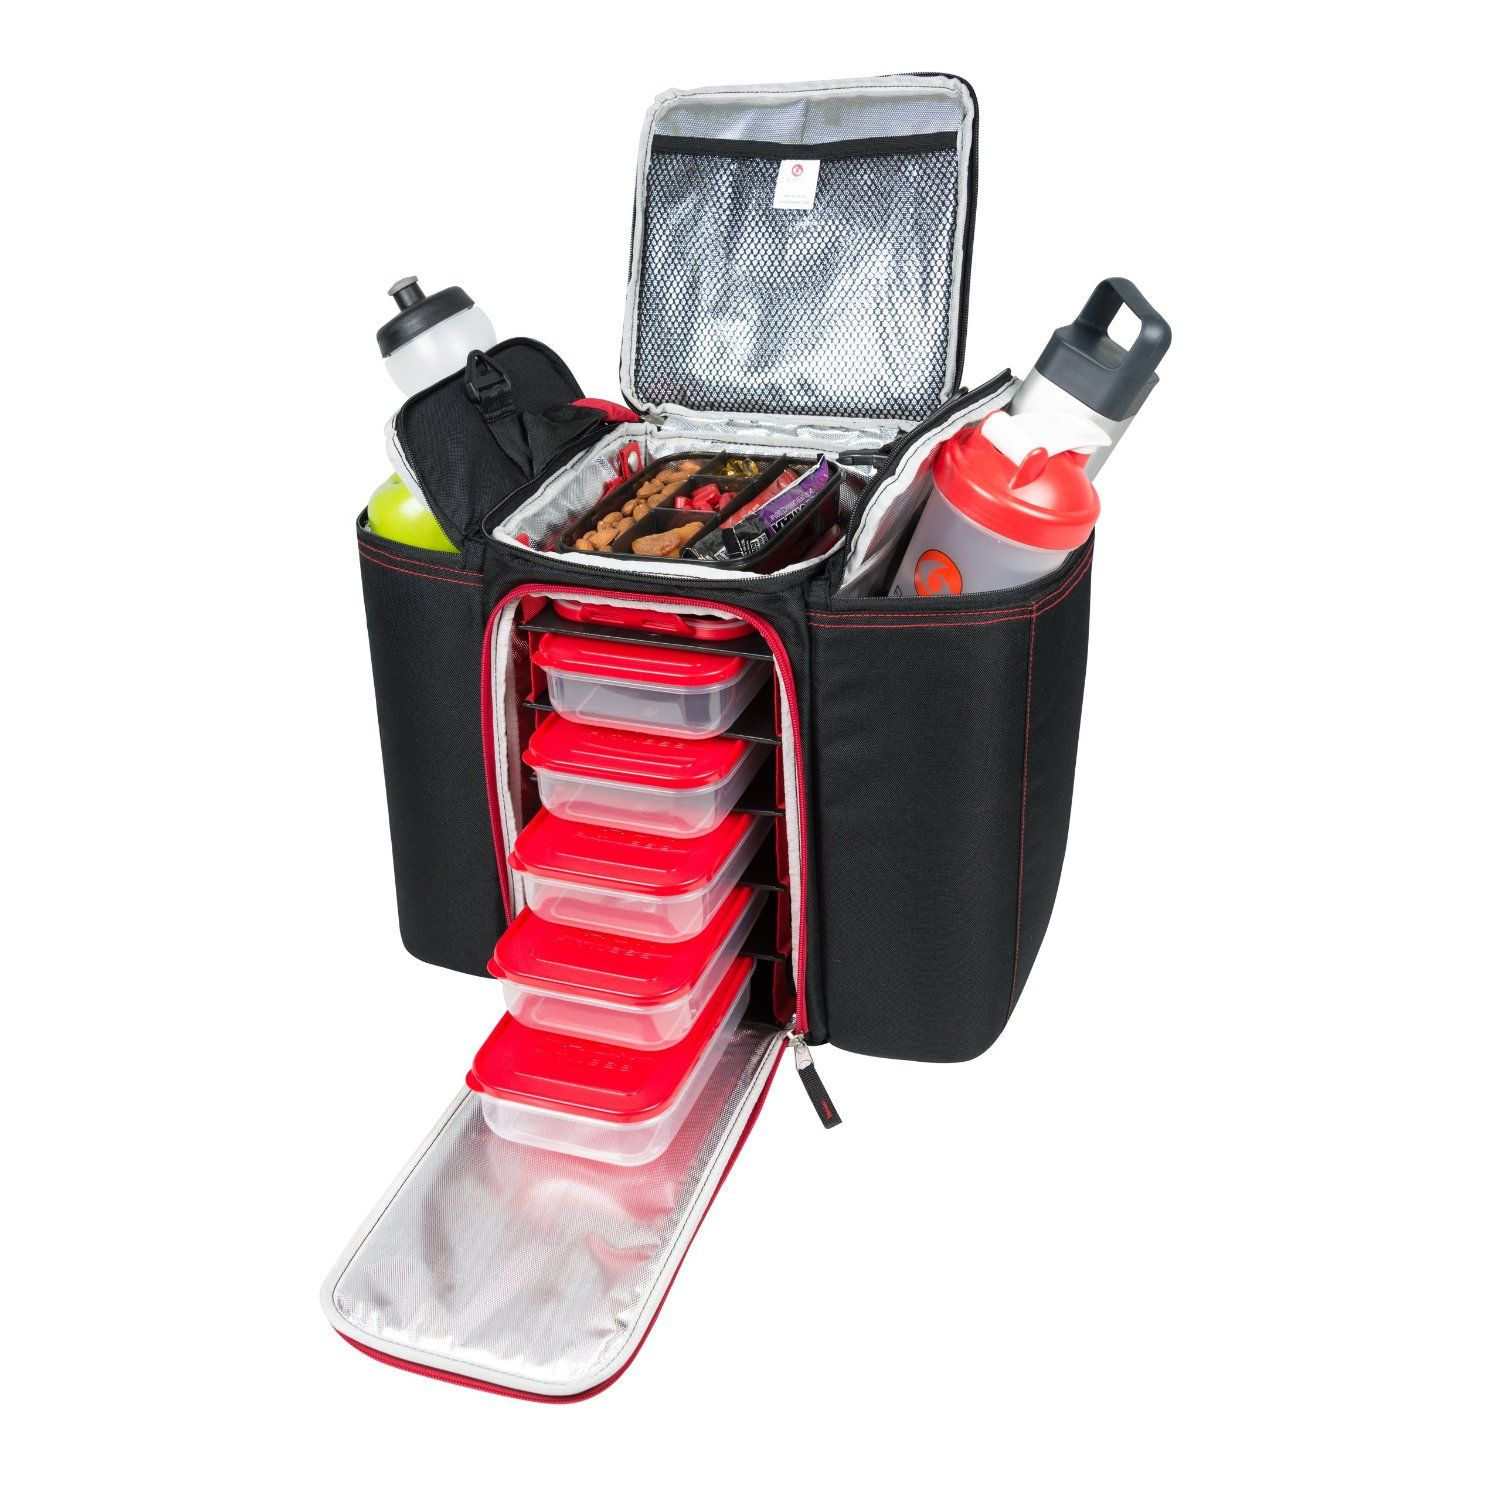 Meal Prep Fitness Bag Insulated Lunch Management At Work Gym Or Travel Design